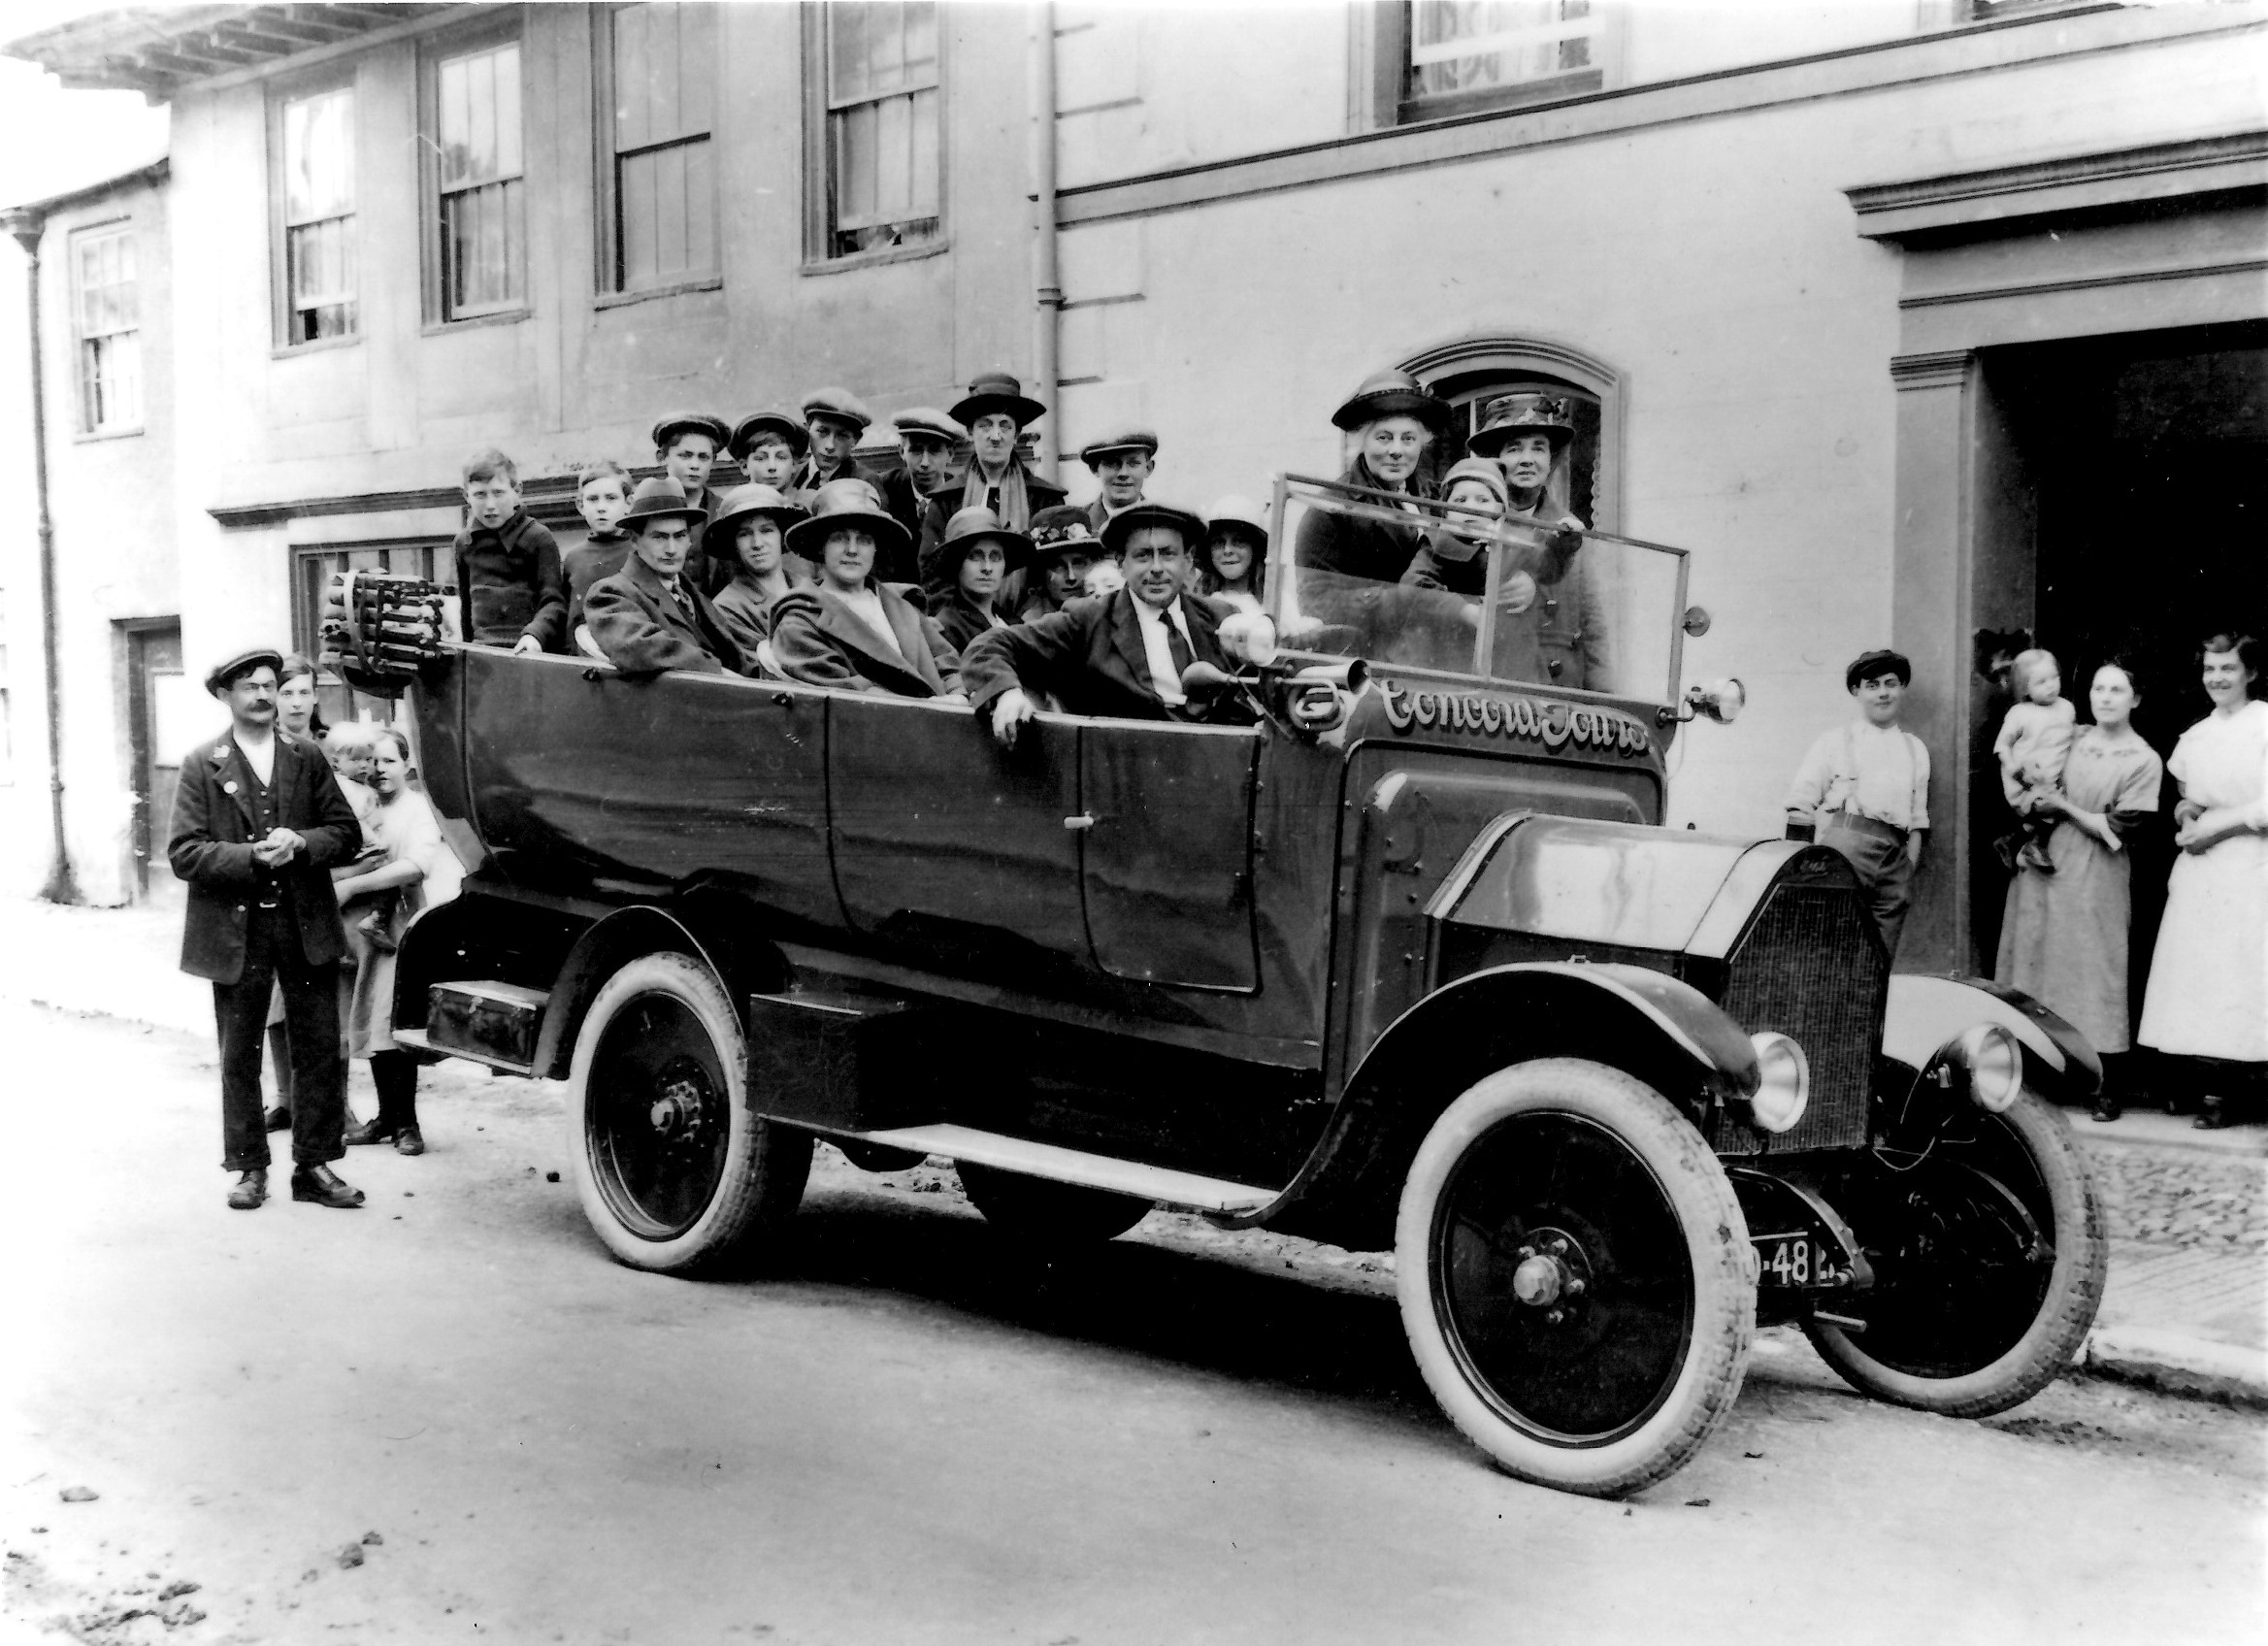 Charabanc outing -Salvation Army - 1910